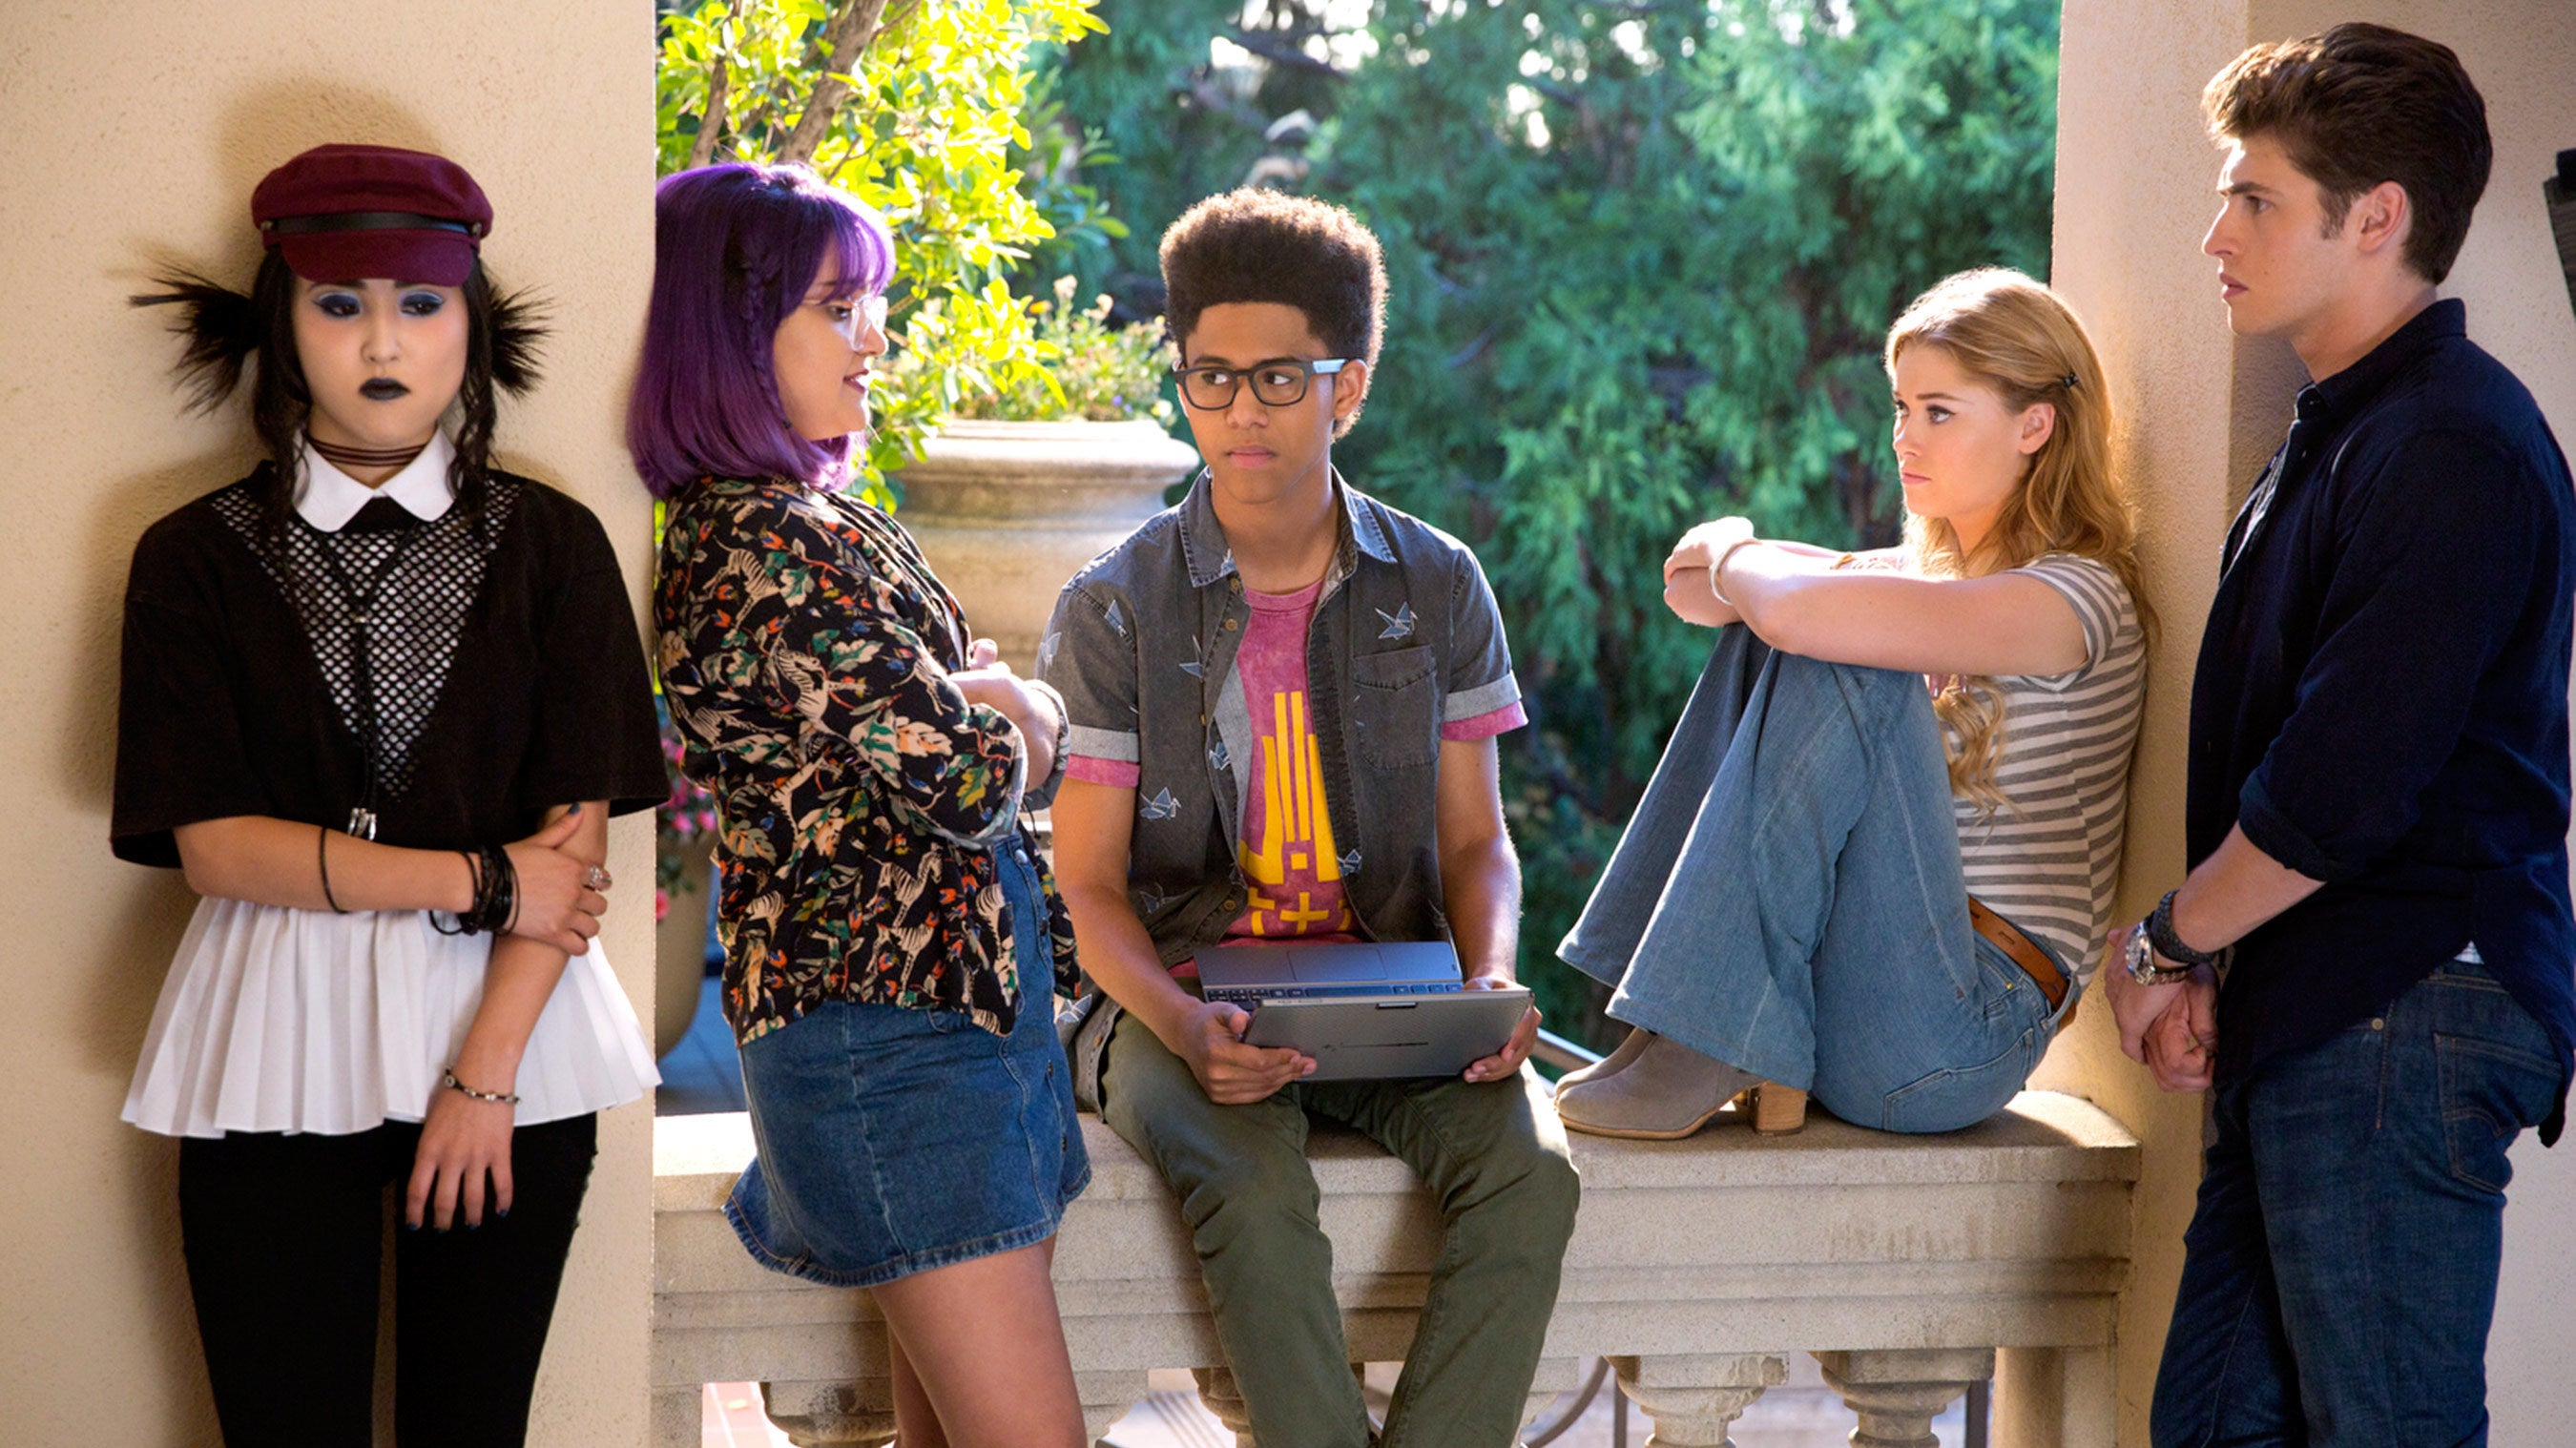 Runaways' Second Season Will Arrive This Summer And Feature A Connection To The MCU